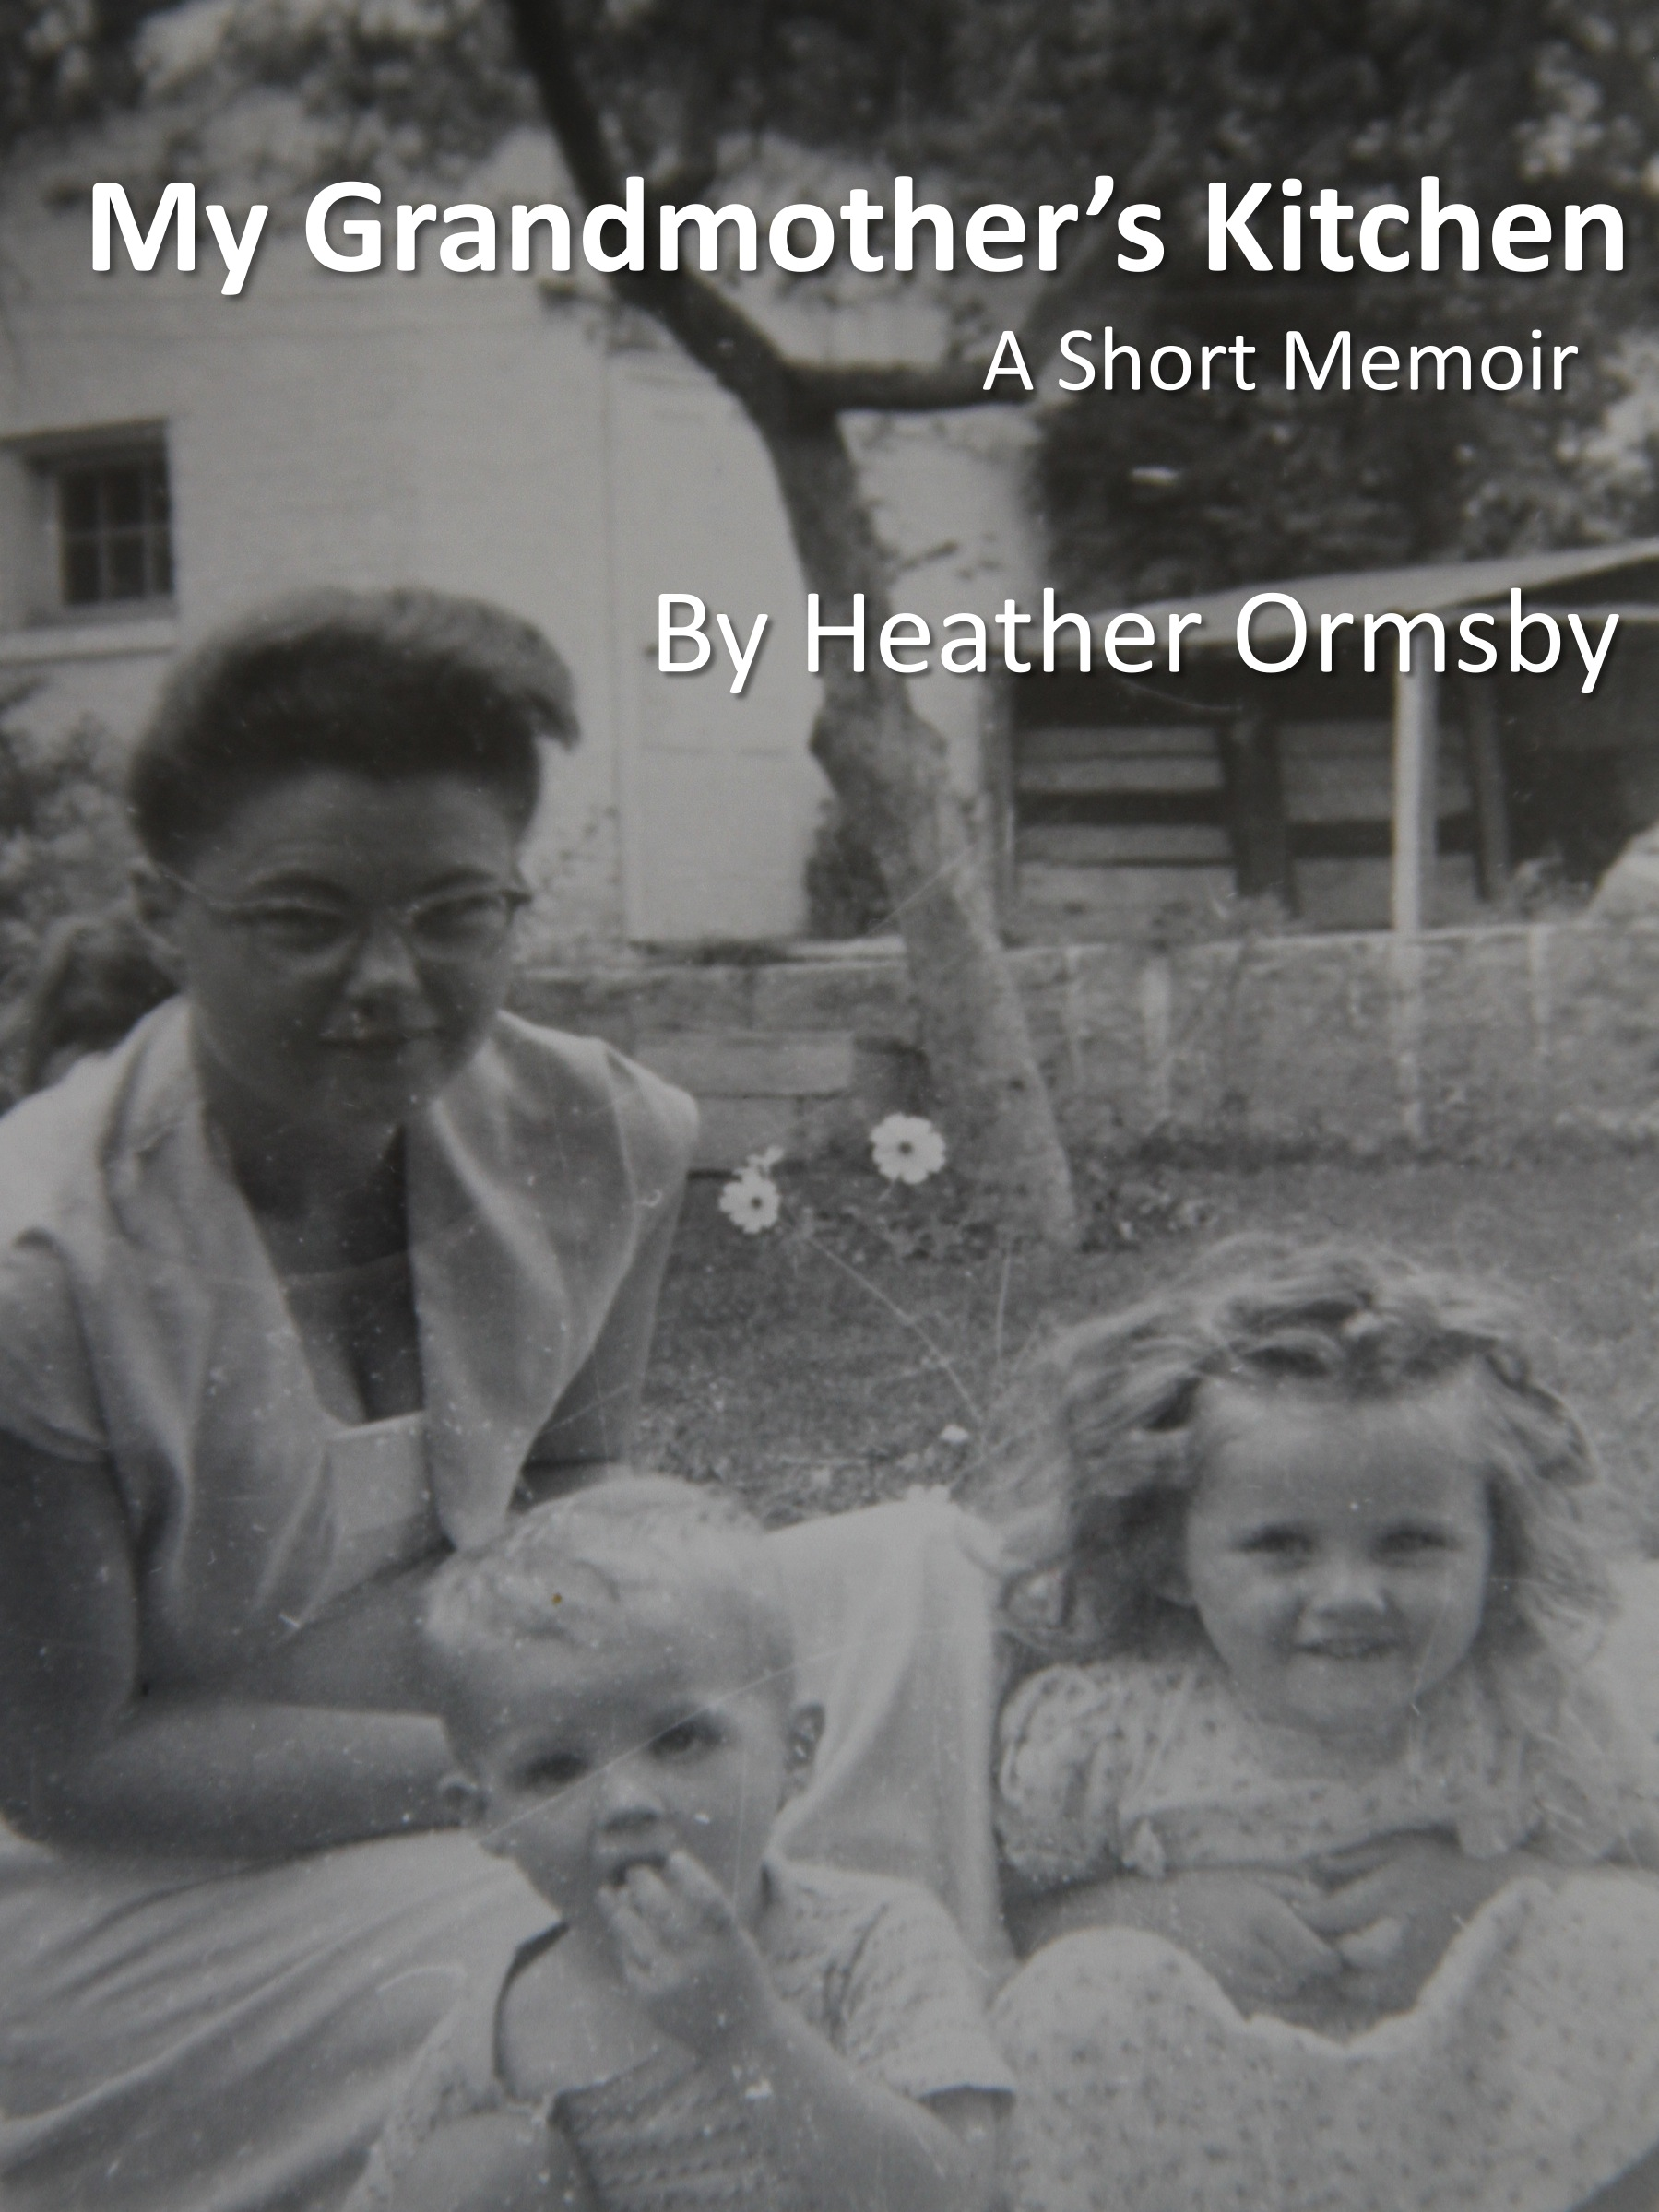 family dinners heather ormsby booksinthenight my grandmother s kitchen